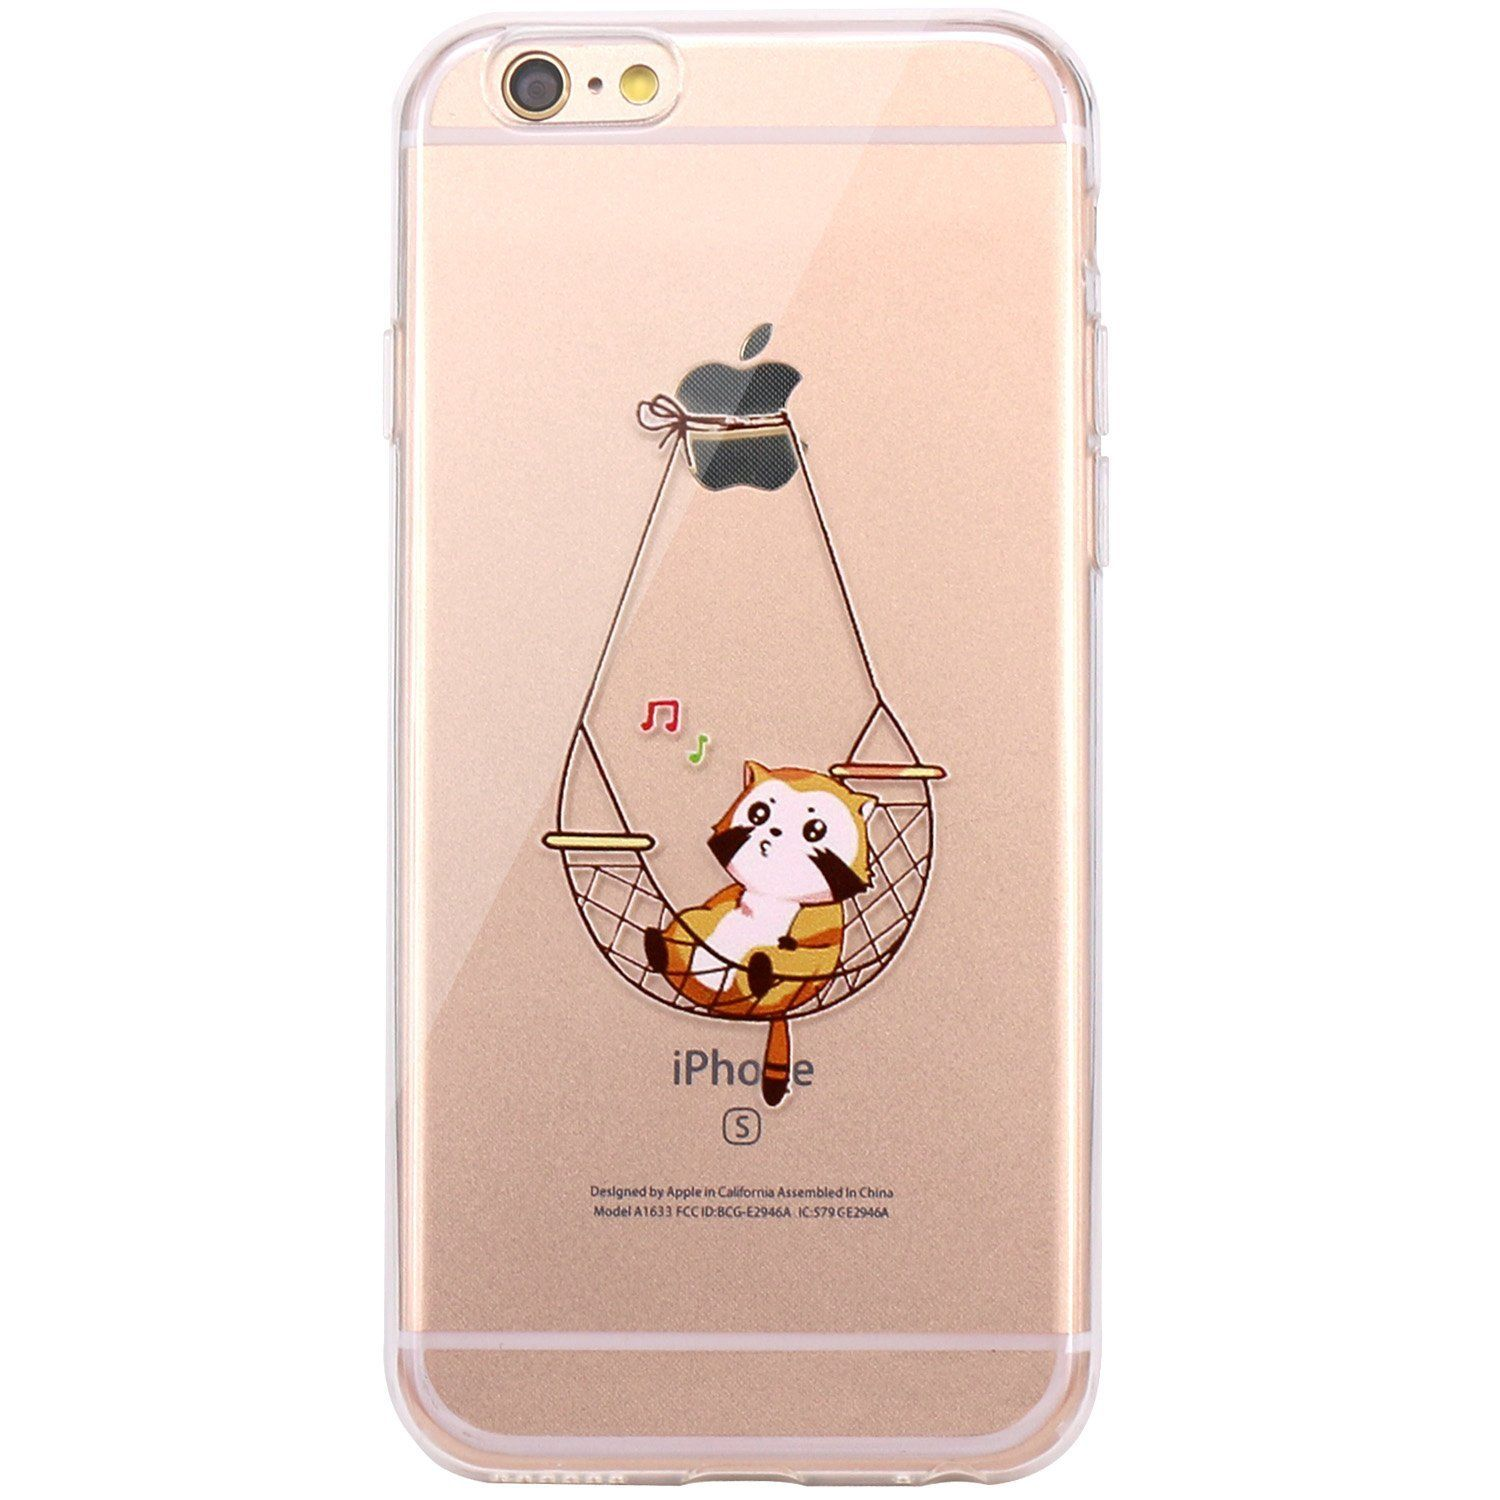 c38afebe758c iPhone 6 Case, JAHOLAN Amusing Whimsical Design Clear Bumper TPU Soft Case  Rubber Silicone Skin Cover for iPhone 6 6S - Eating Giraffe